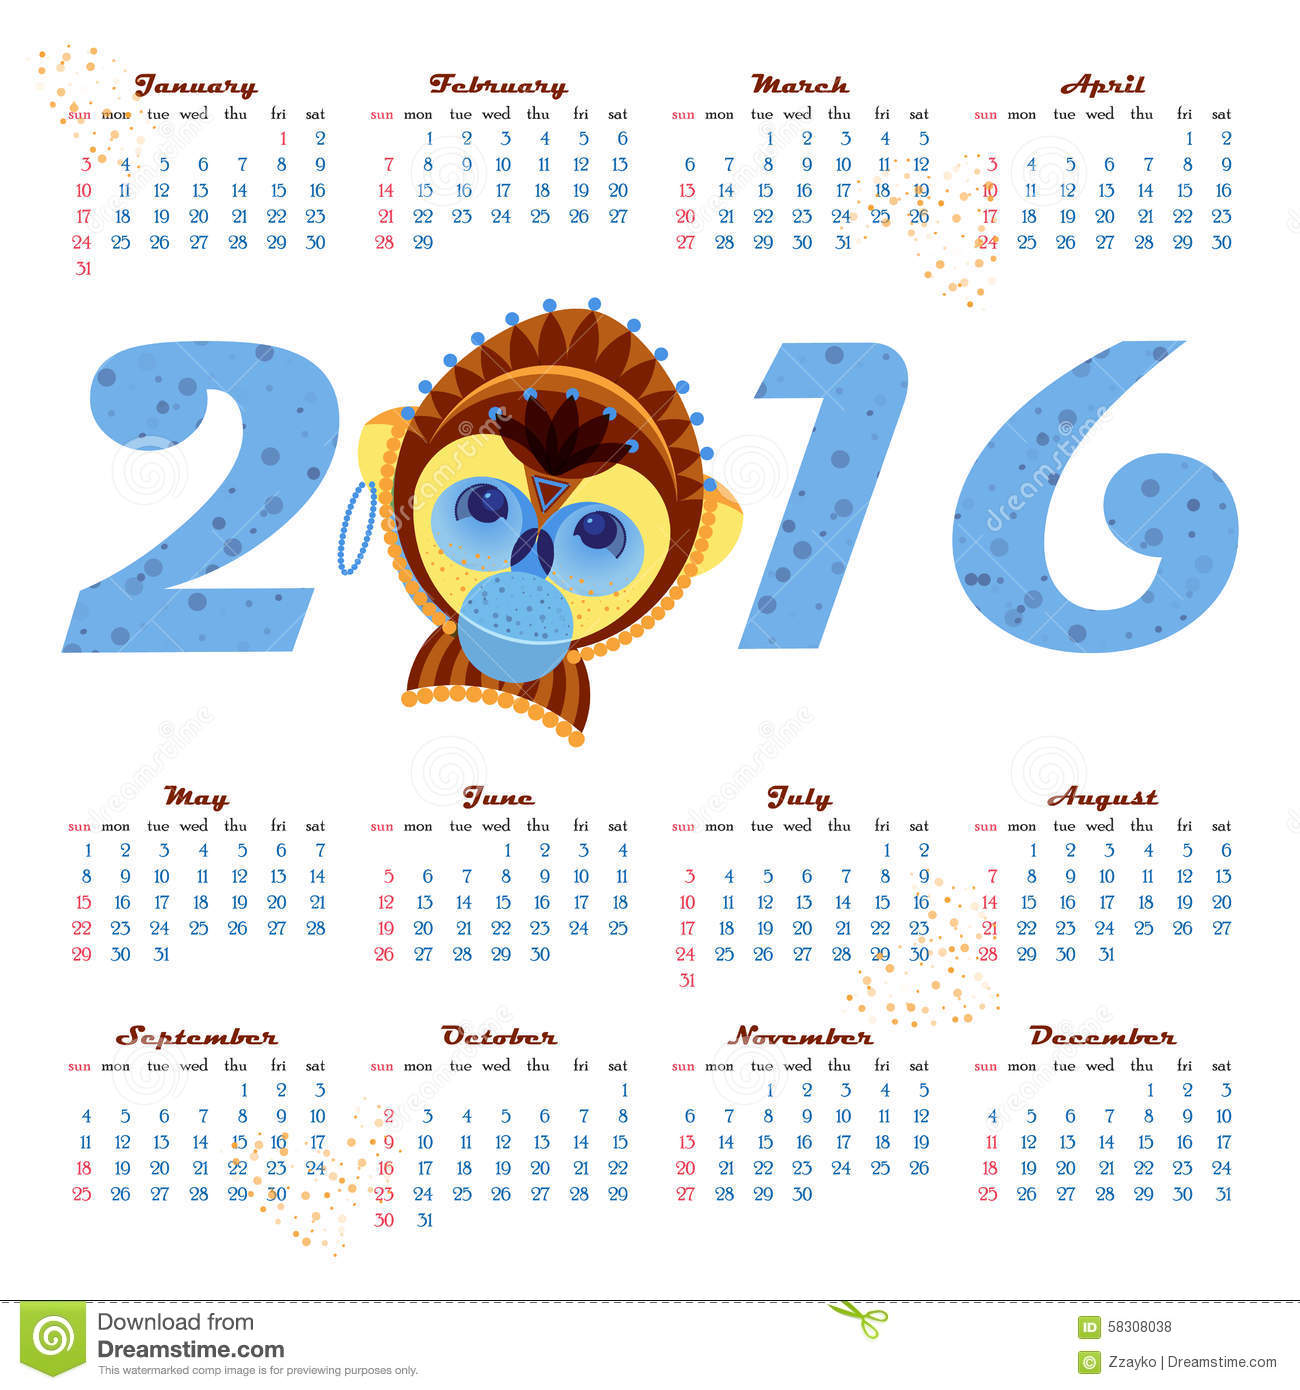 Calendar Illustrations : Calendar with picture monkey symbol of year stock